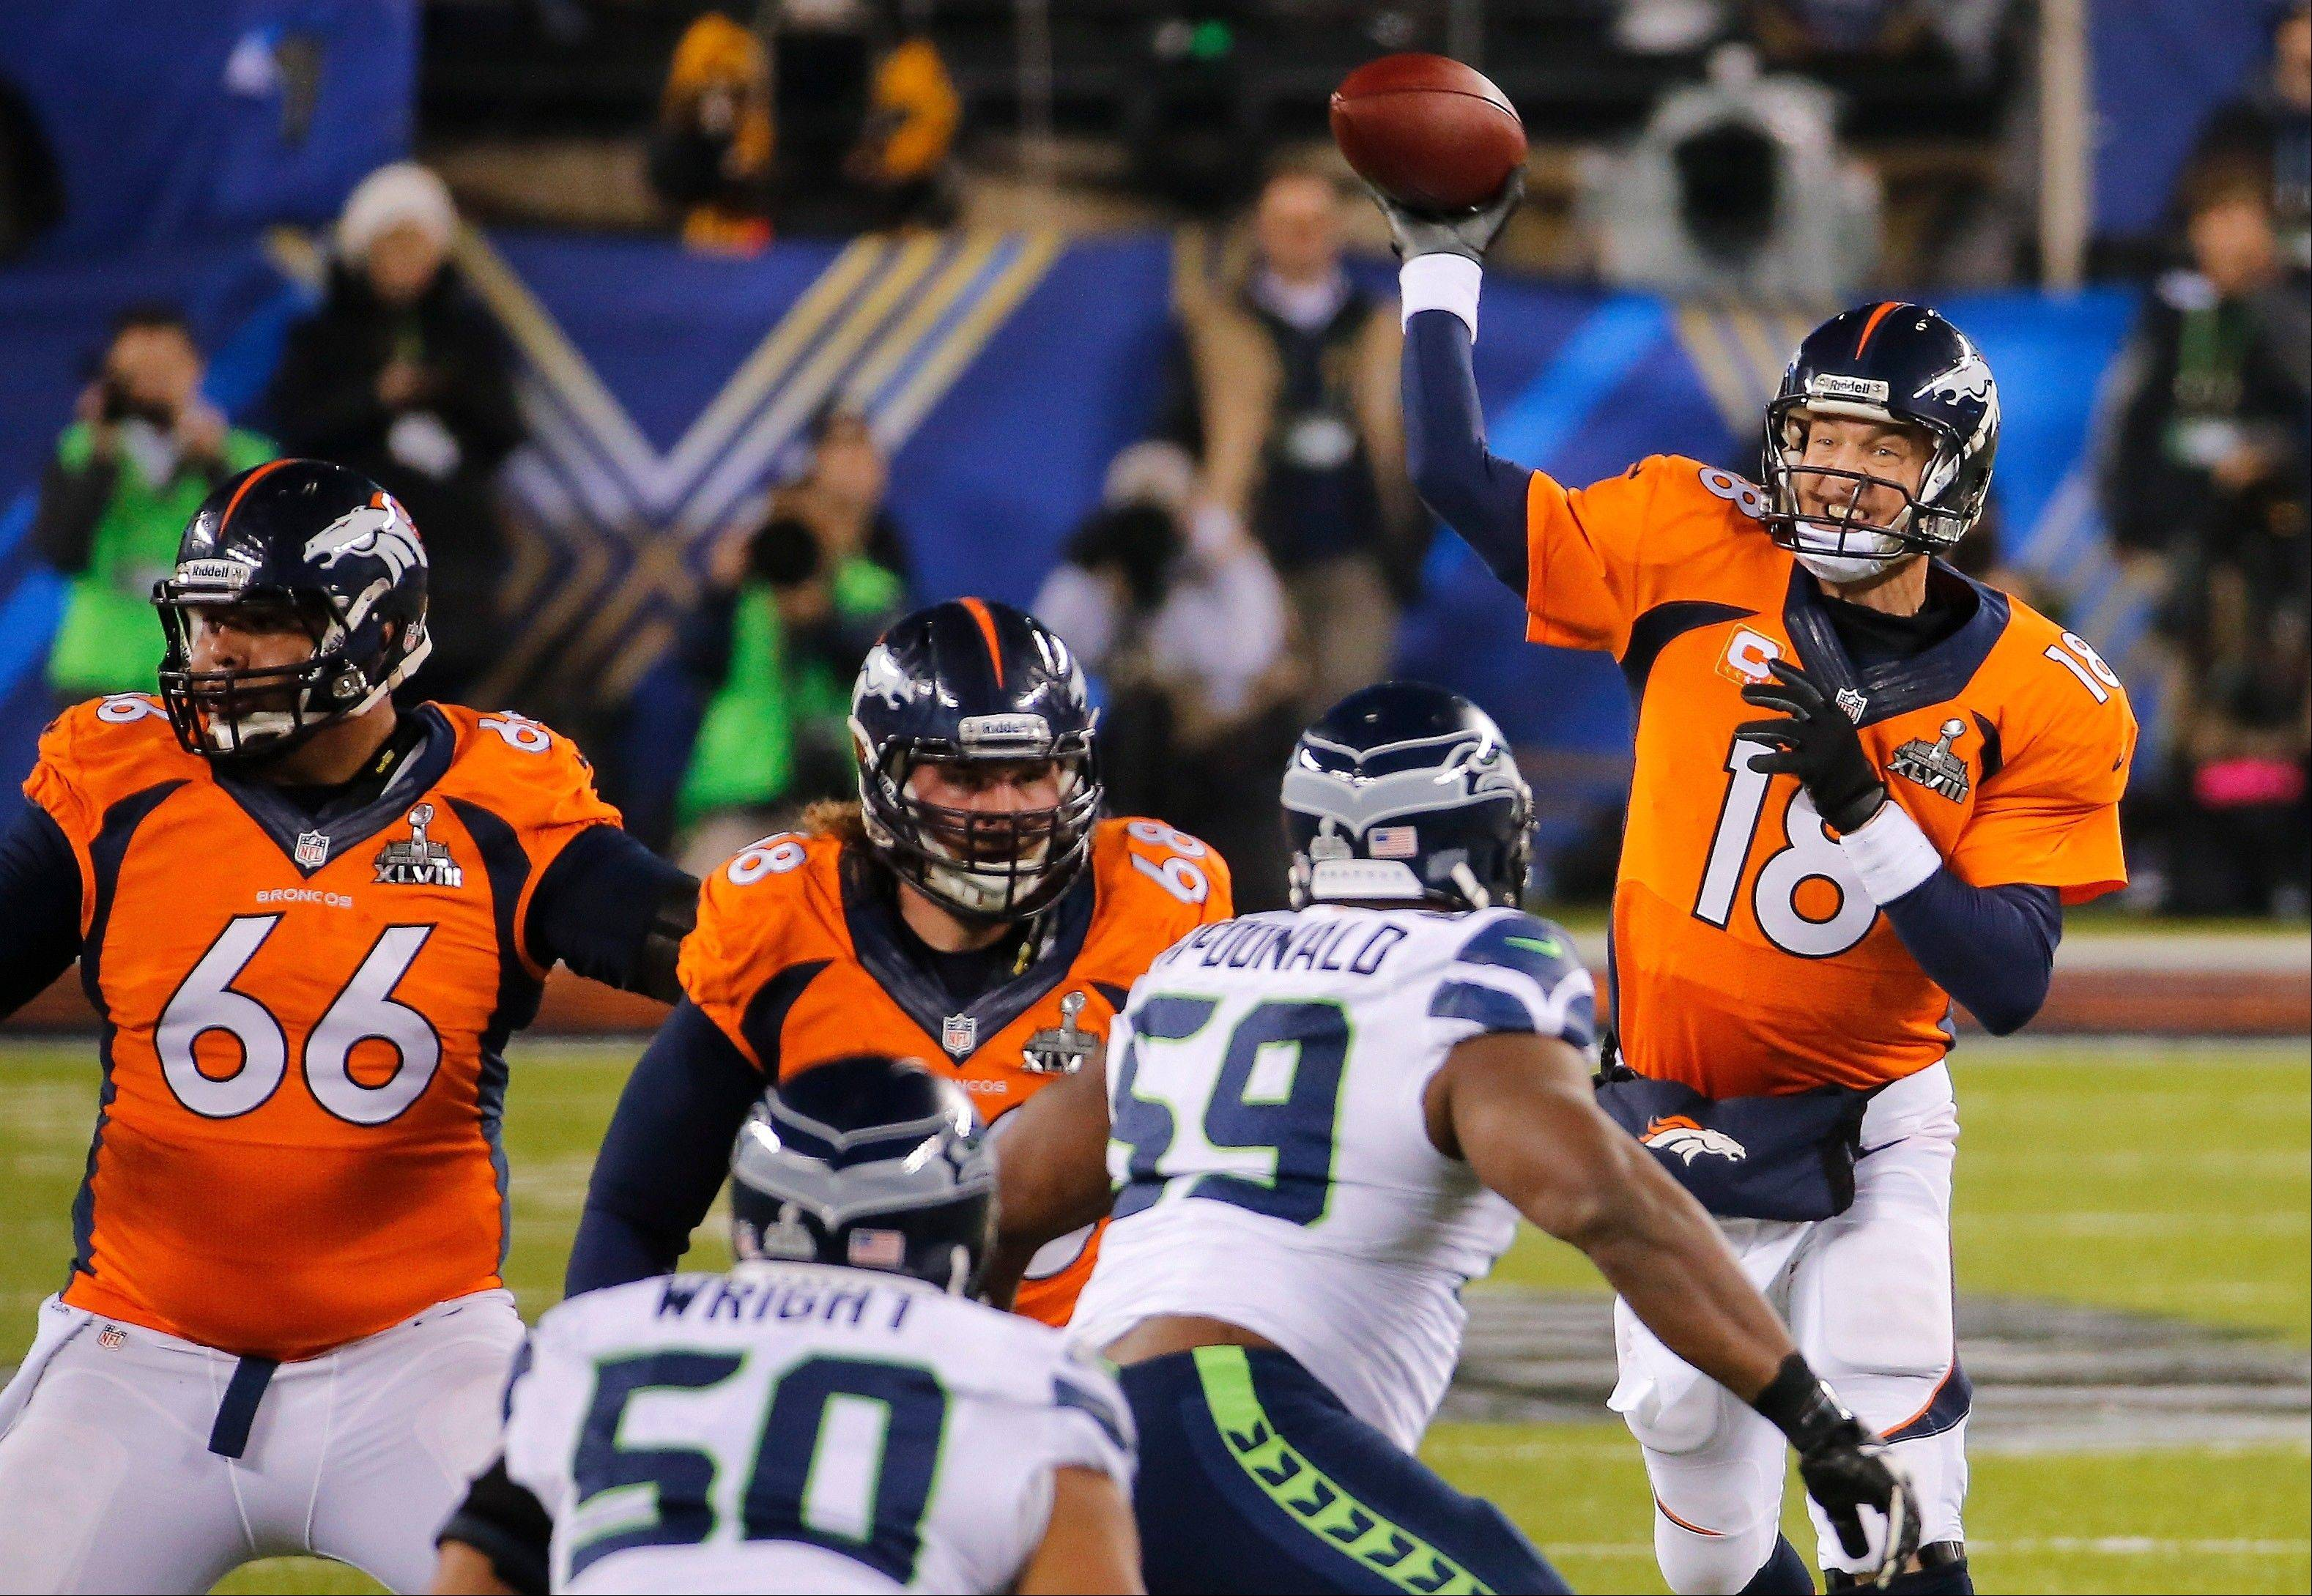 Denver Broncos quarterback Peyton Manning (18) throws a pass against the Seattle Seahawks during the first half.